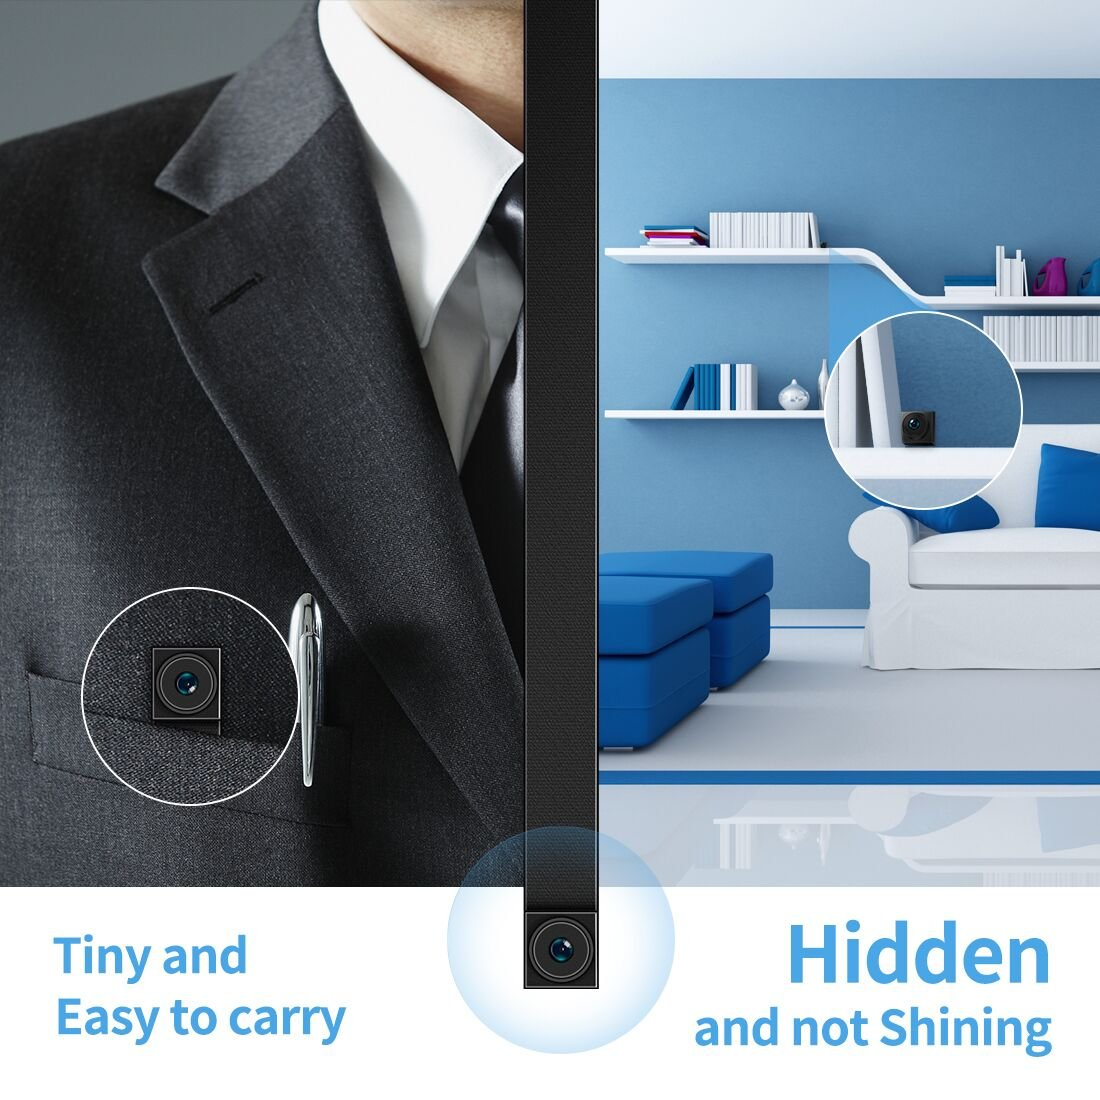 Hidden Camera,FREDI Spy Camera 720P Wireless WiFi IP Cameras Home/Office Security Mini Portable Covert Nanny Cam Works for iPhone iOS/Android mobilephone by FREDI (Image #2)